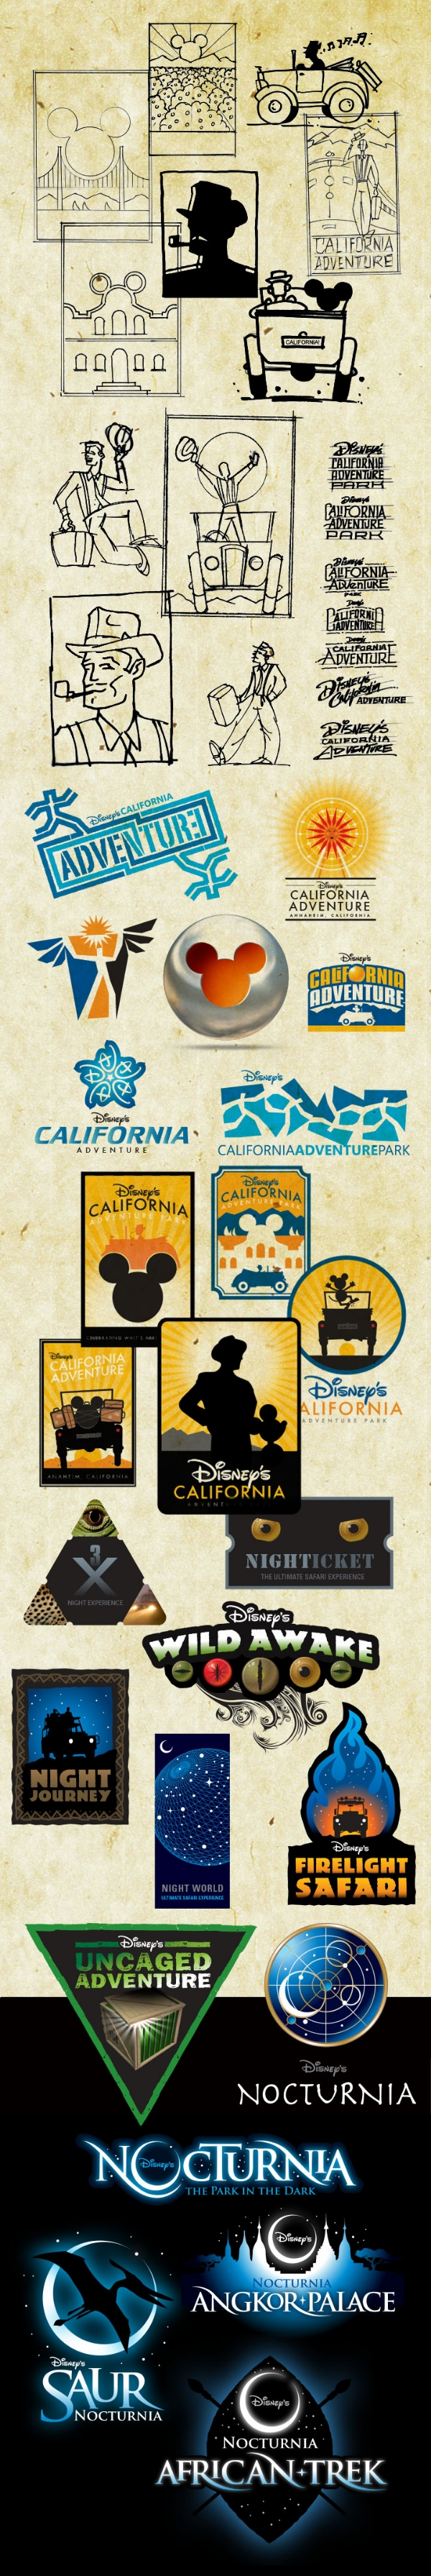 The Wide Variety of Disney Projects CLK Design has Worked On